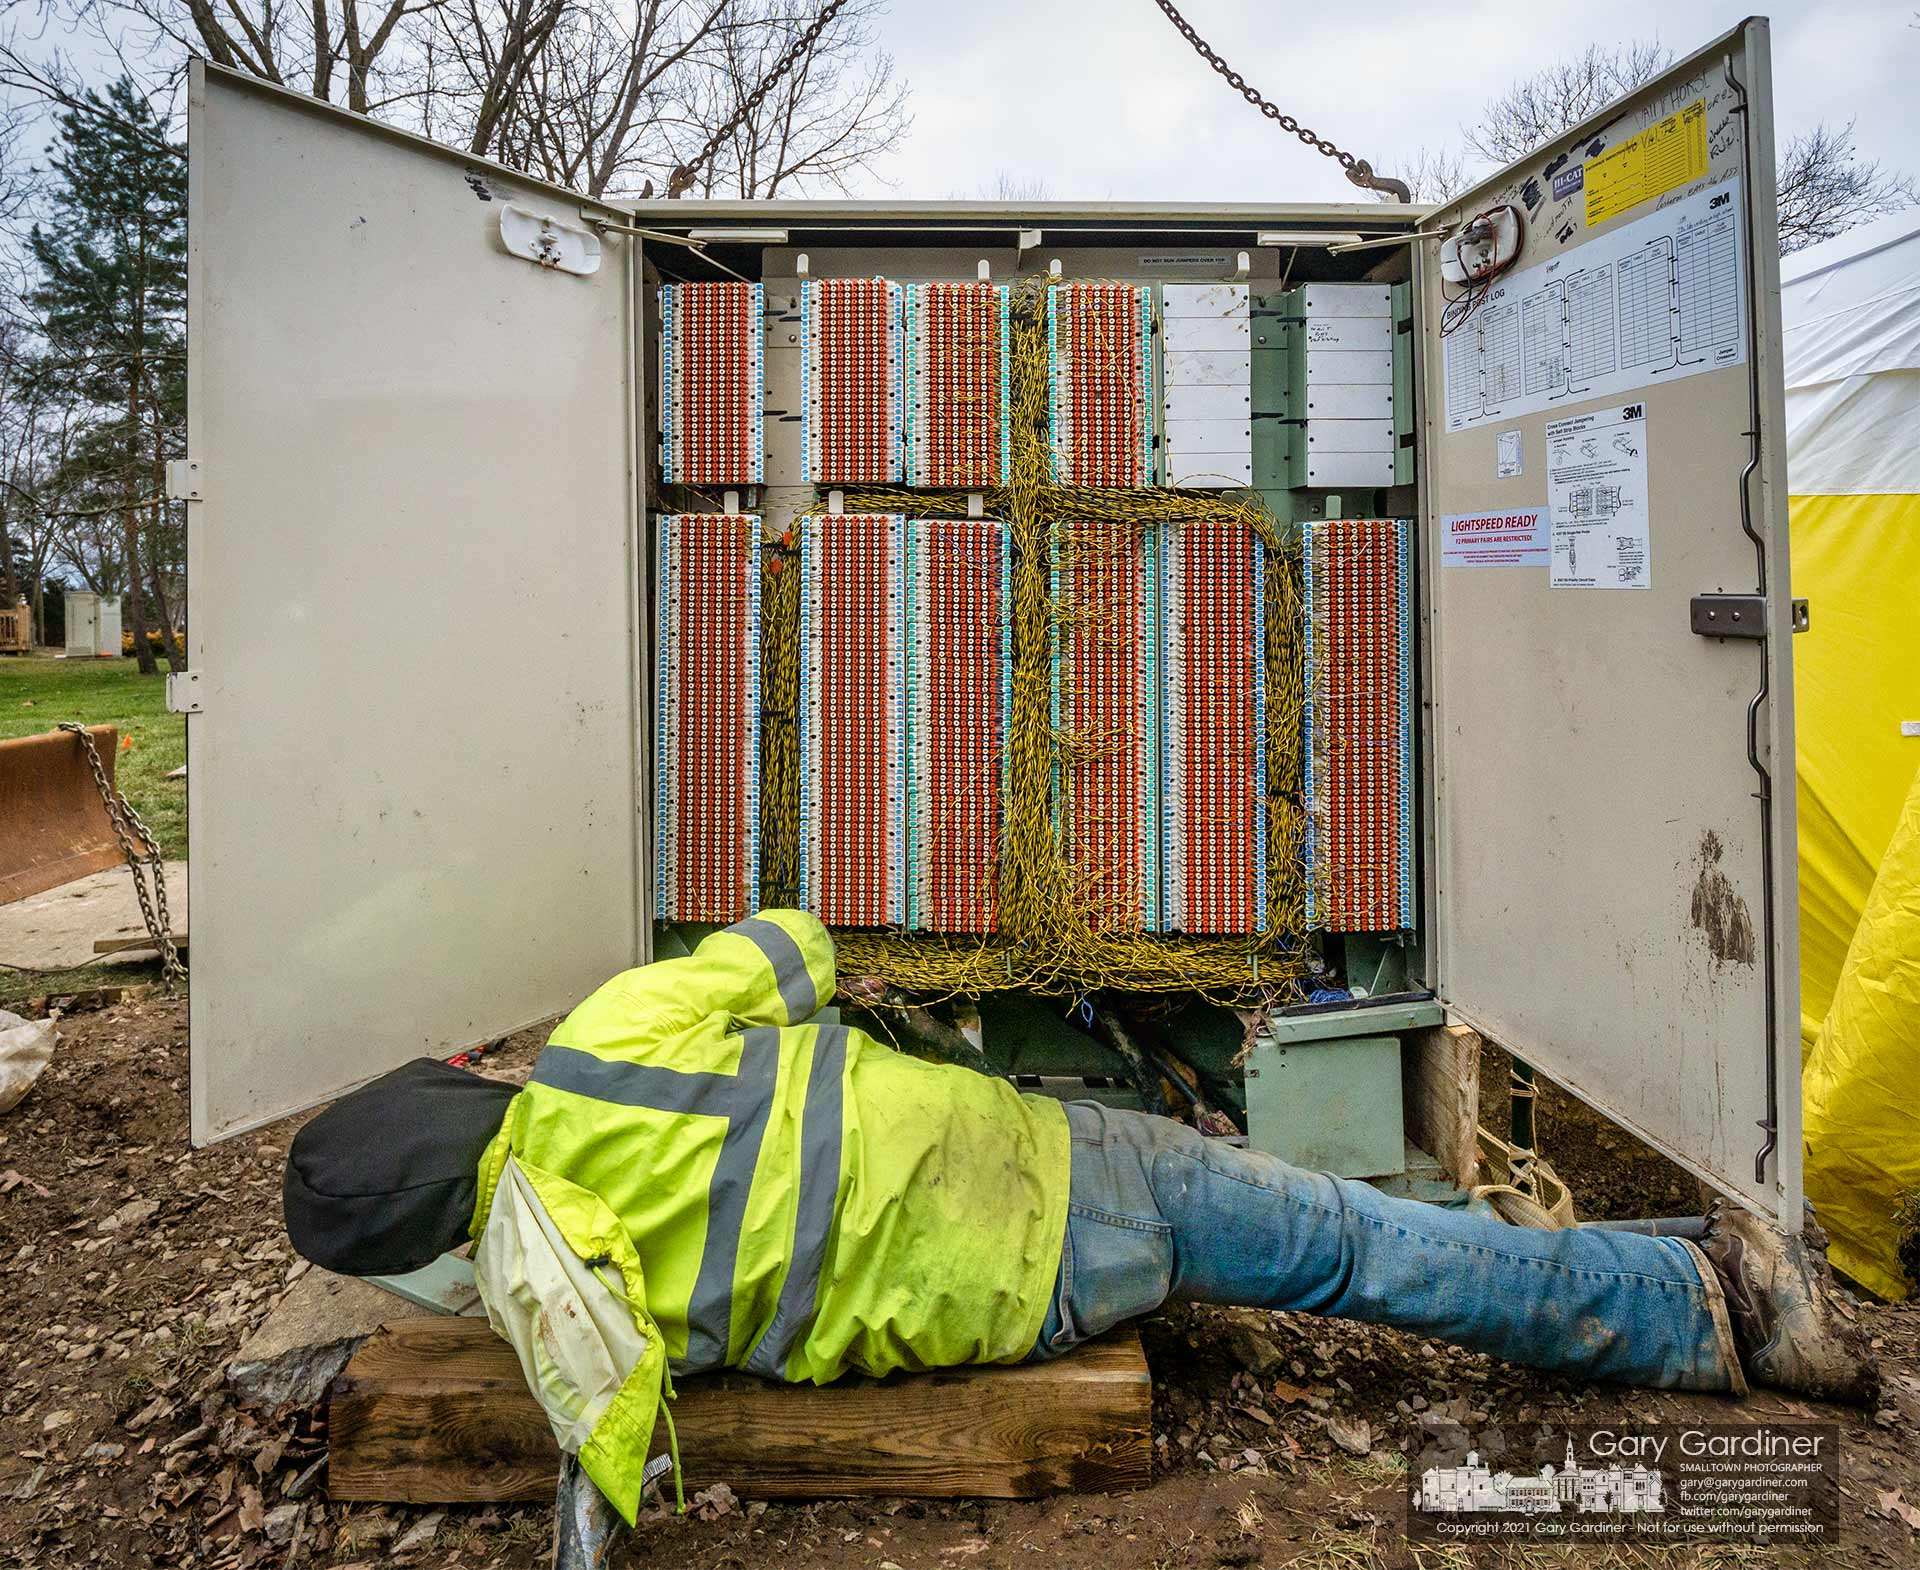 A technician adjusts the placement of a section of the ATT copper cable connection box on Huber Village Dr. during repairs for the structure damaged by a car crash. My Final Photo for Jan. 7, 2021.